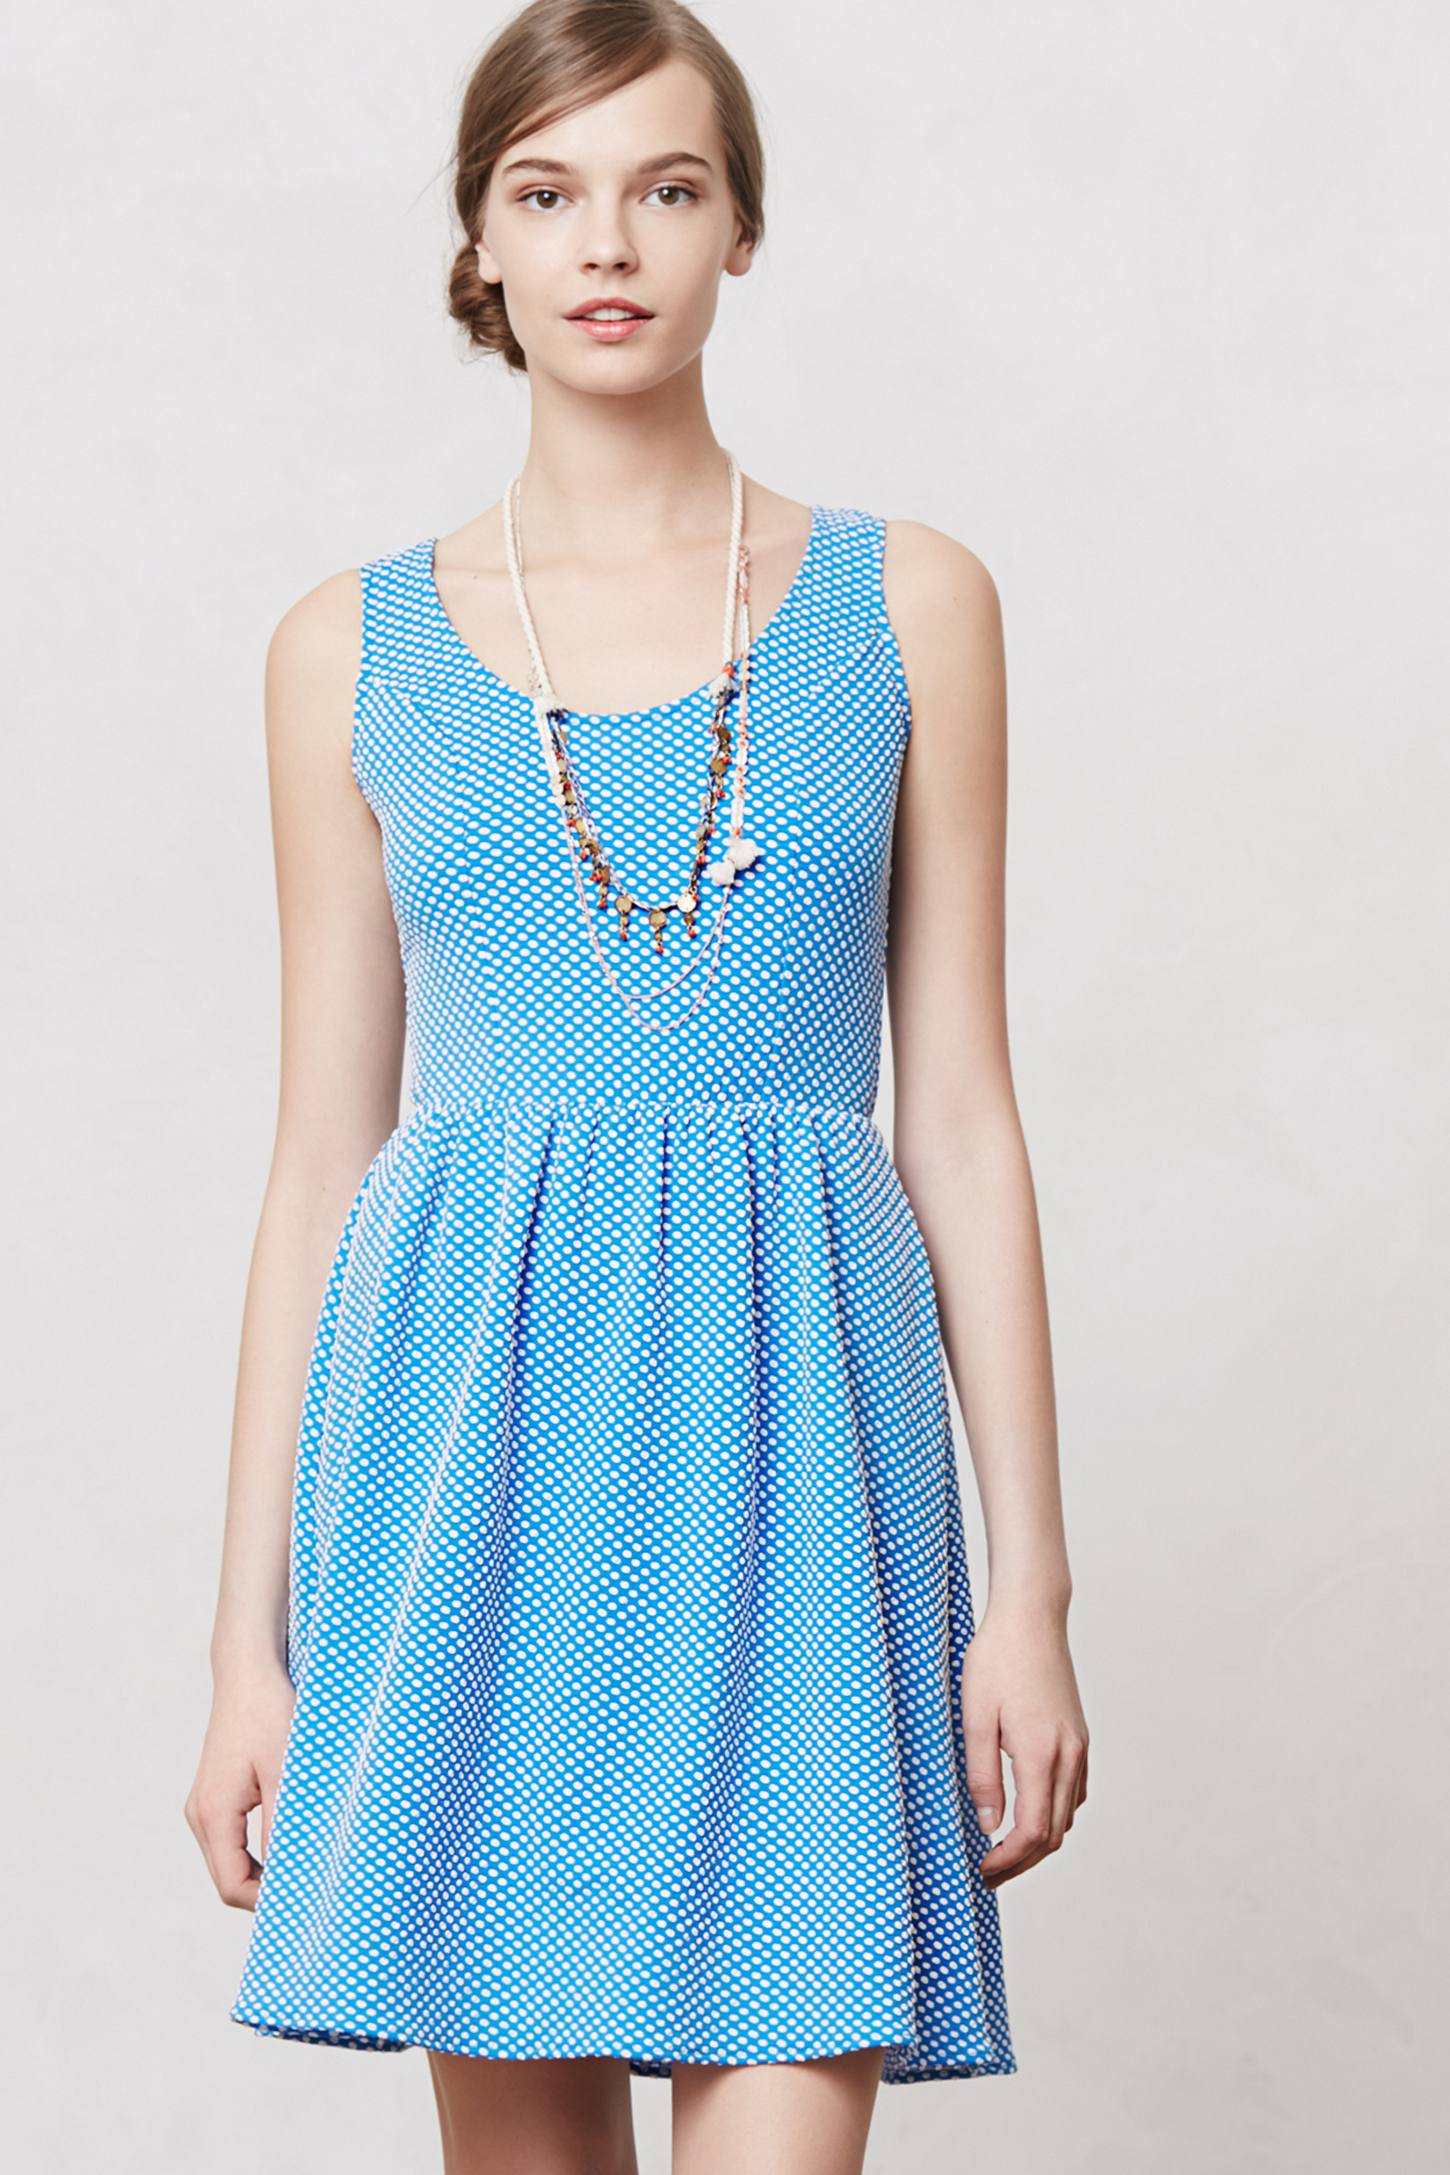 Effortlessly with roxy: Reviews: Pindot Ruffle Dress, Confetti ...